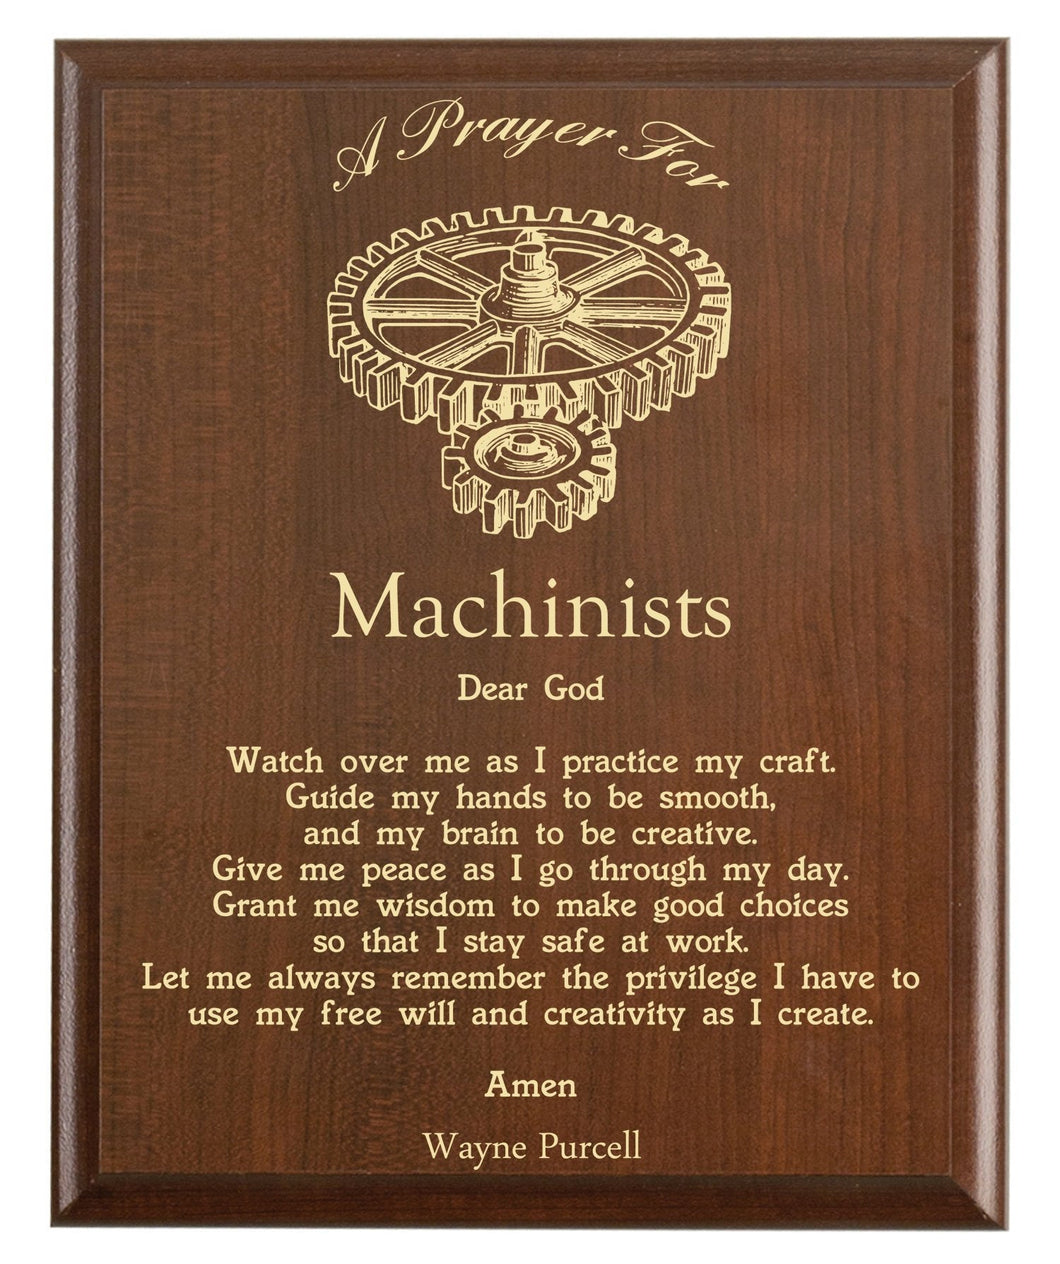 Christian prayer for a machinist with industry logo and free personalization. Cherry finish with laser engraved text.